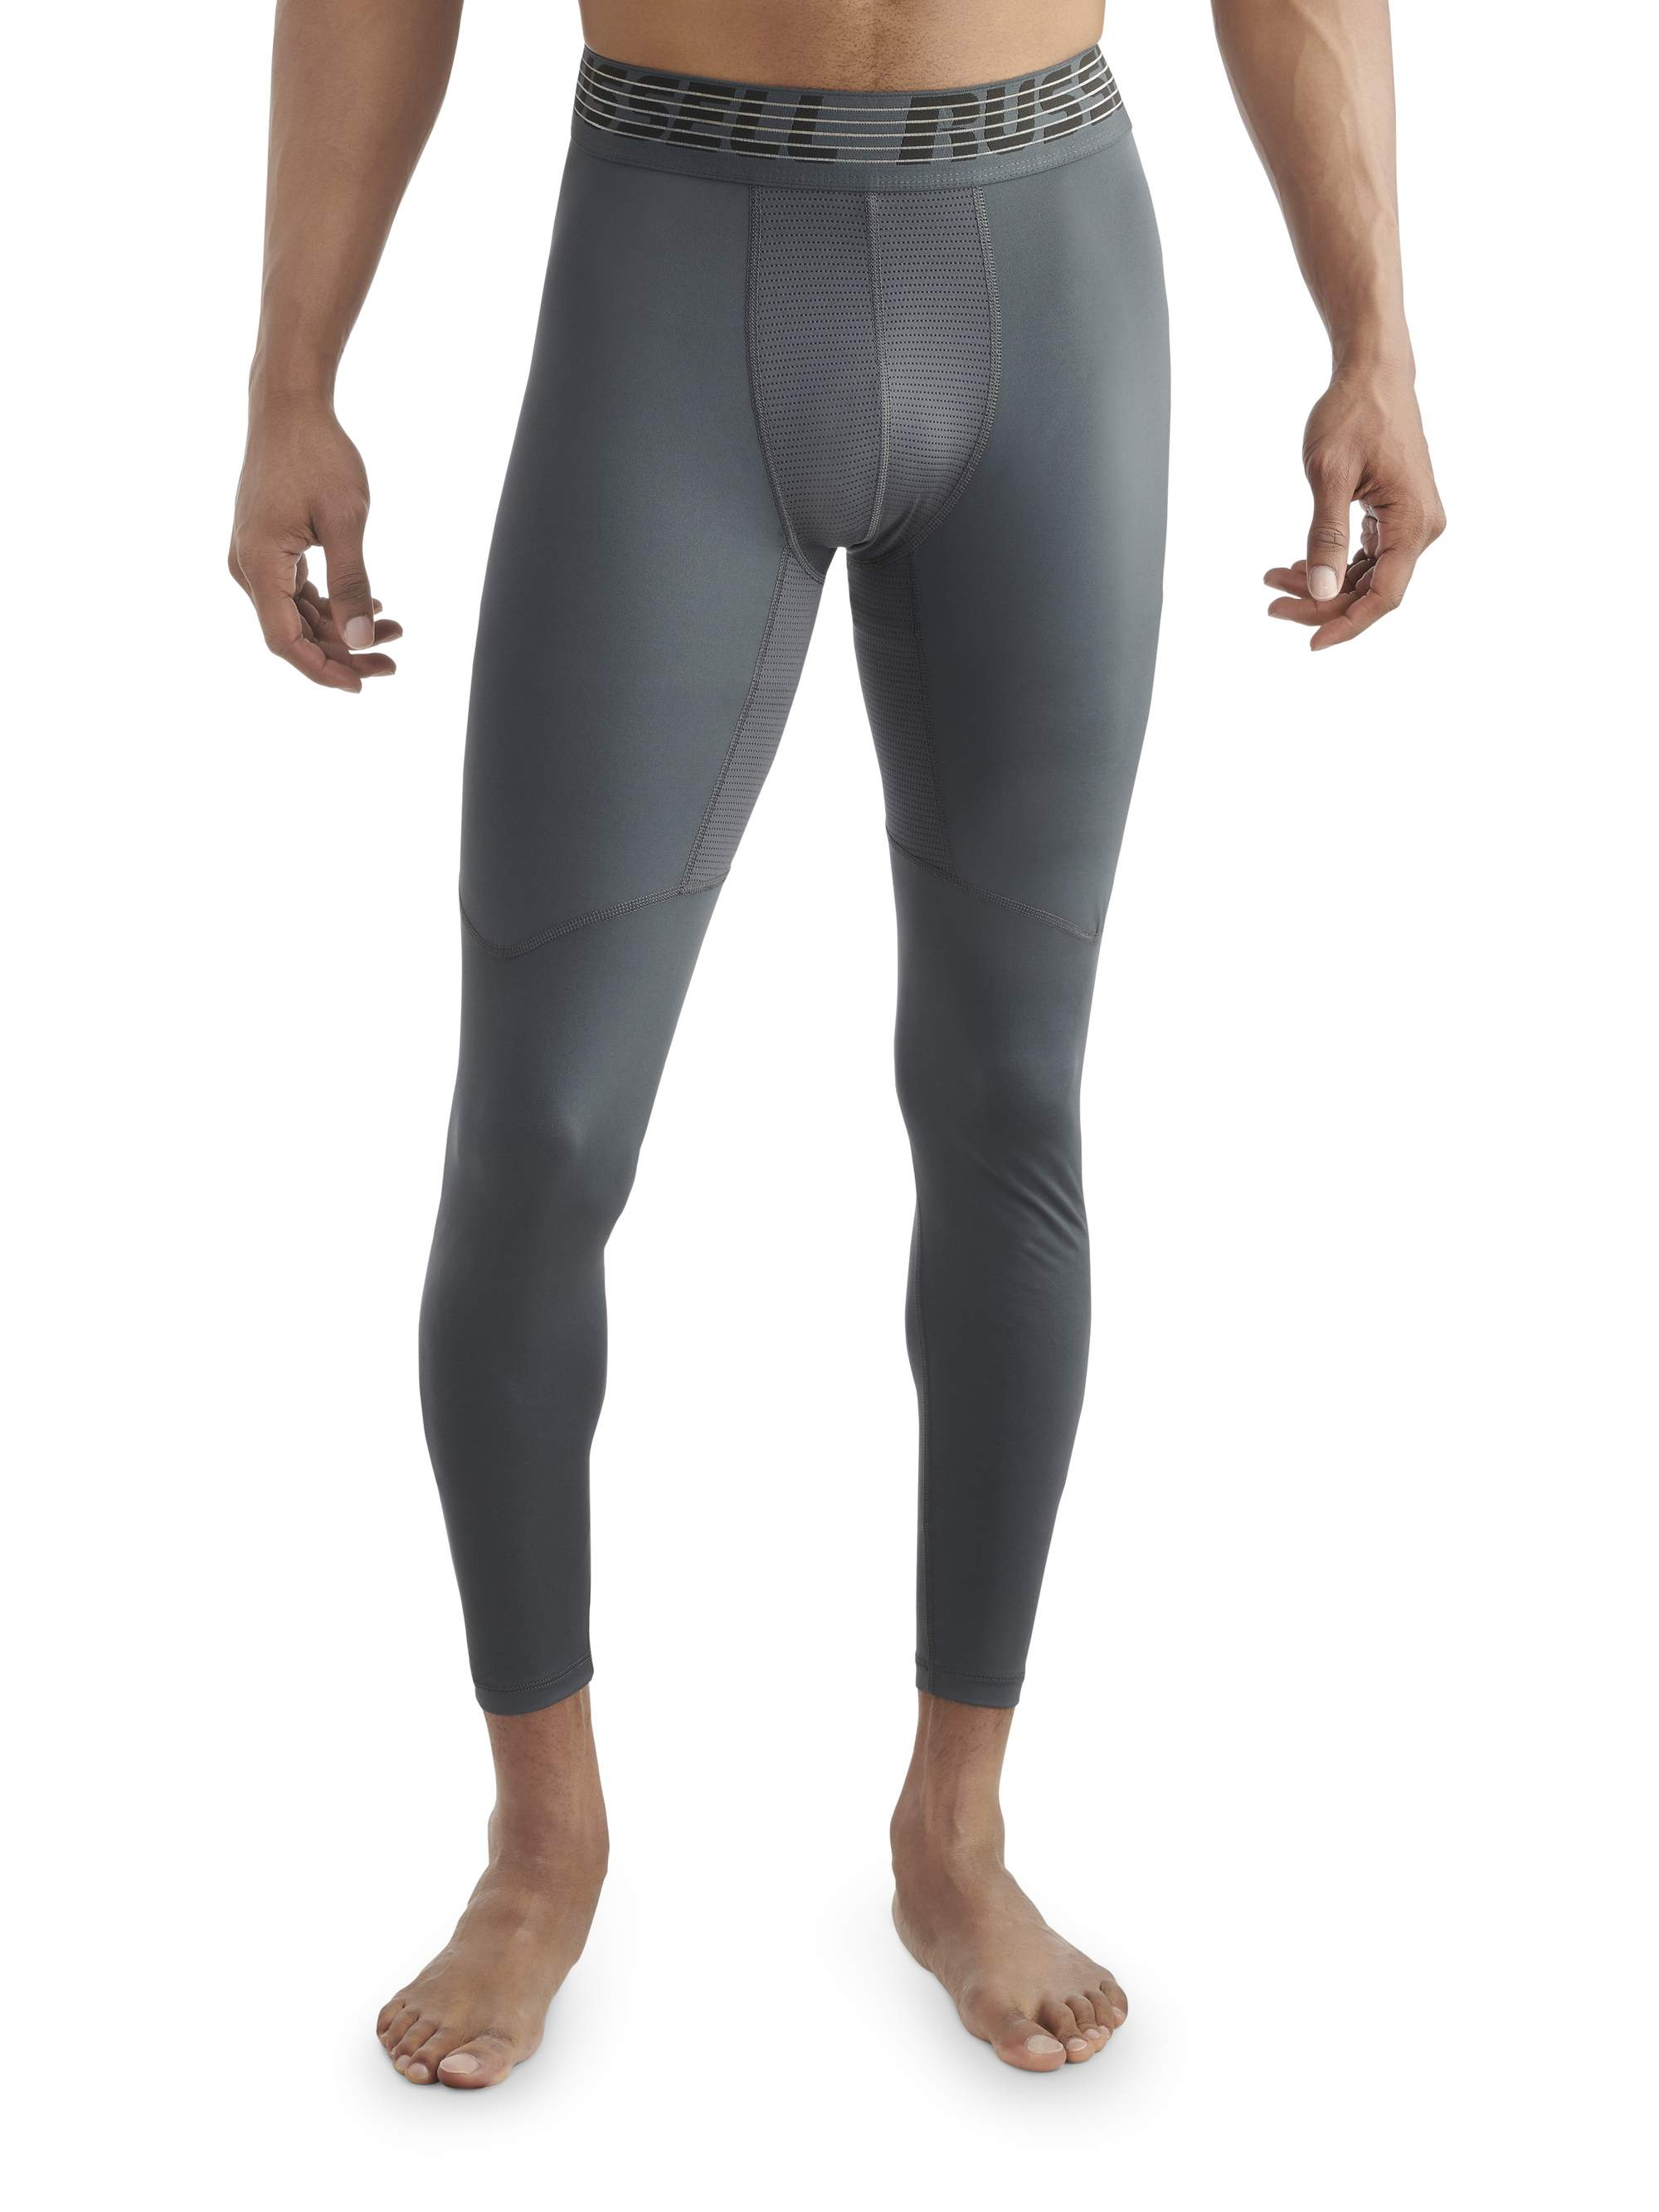 Russell Men's Compression Tight